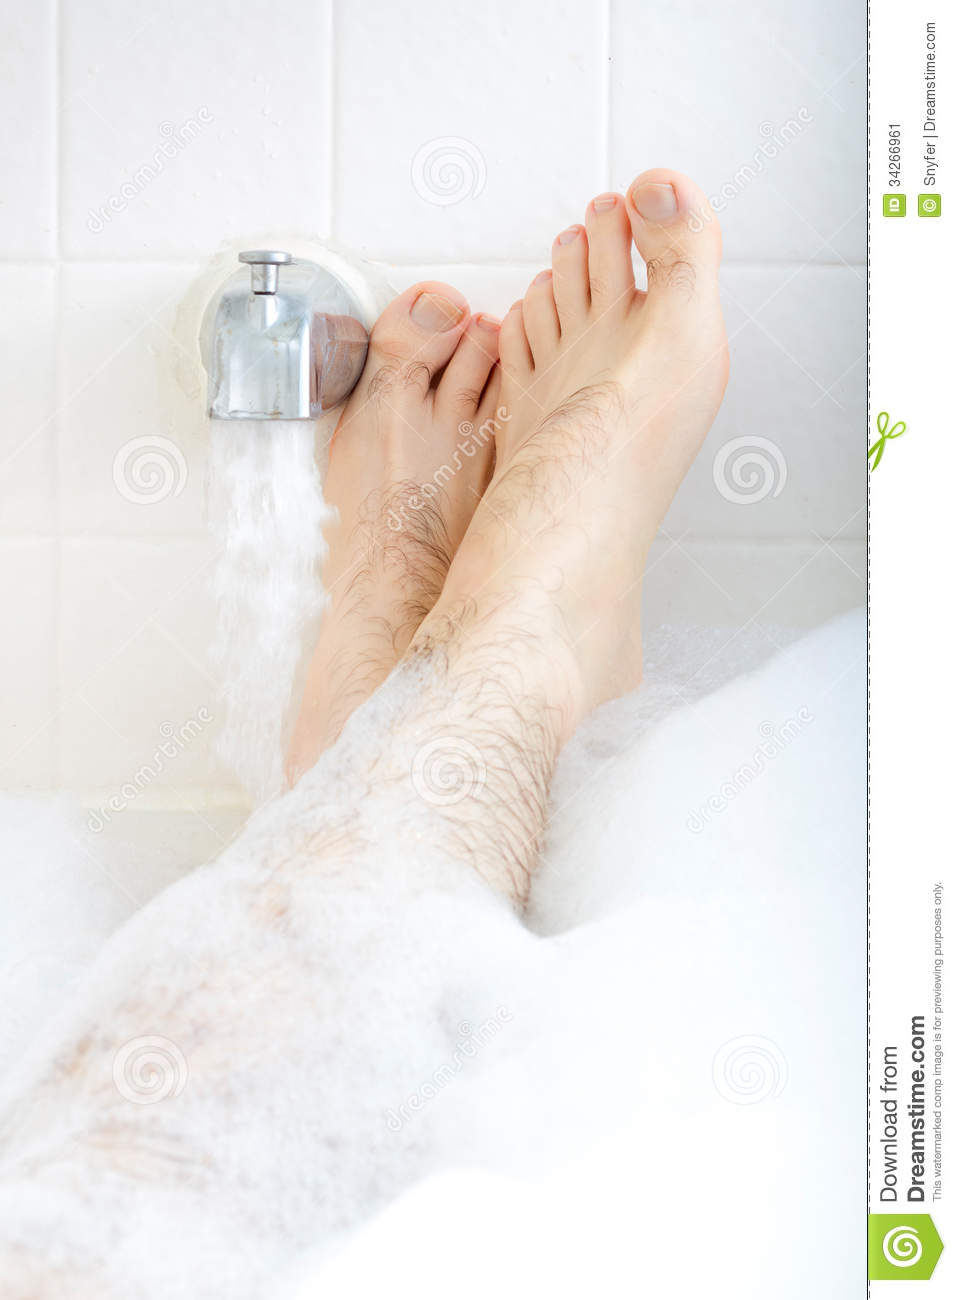 Male feet soaking in the bathtub with faucet runnng water.